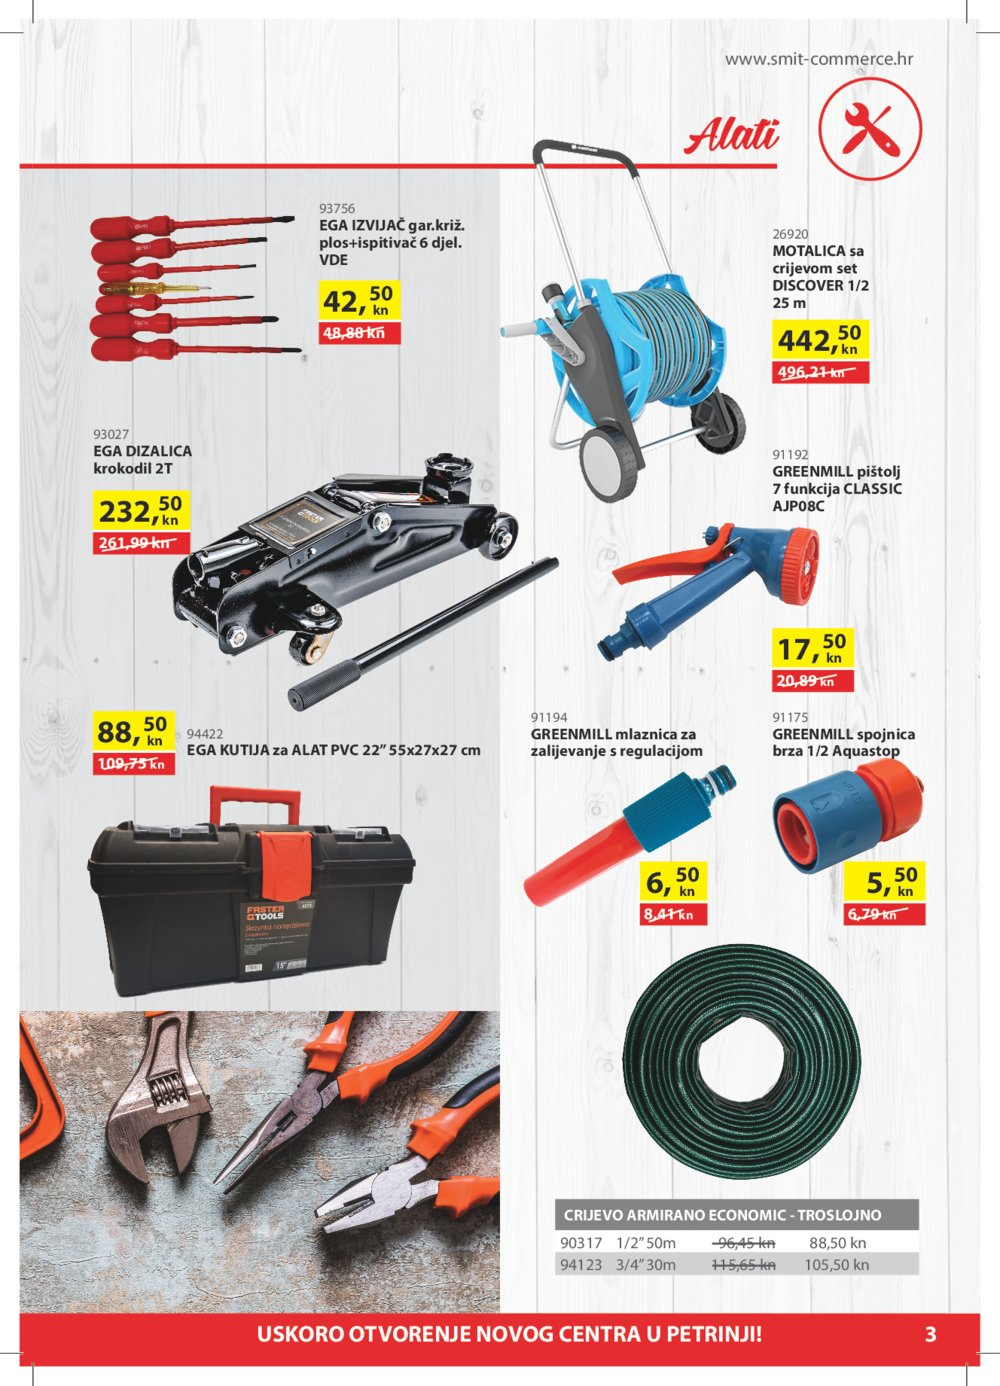 Smit commerce katalog Akcija 15.05.-15.06.2019.